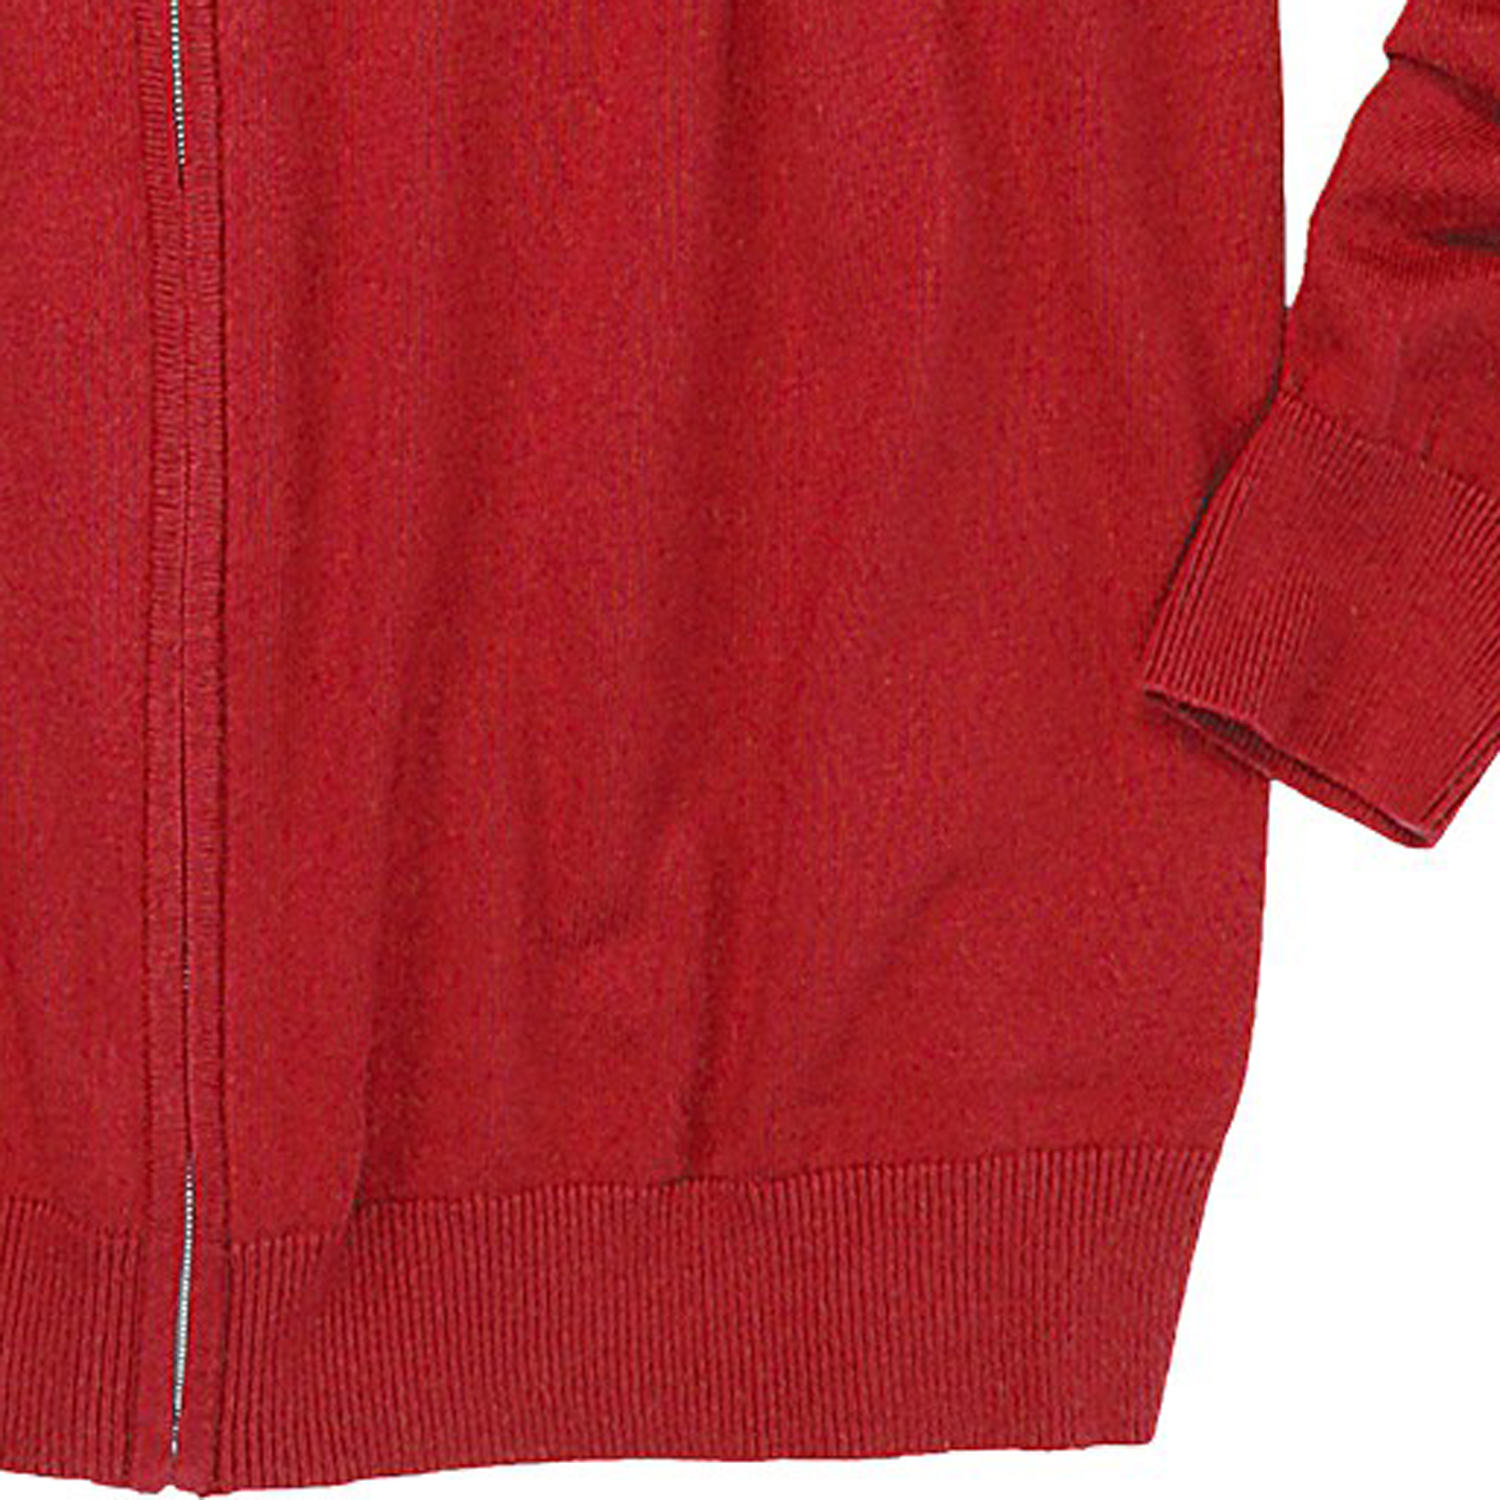 Detail Image to Red uni cardigan by Casamoda in oversizes up to 6XL